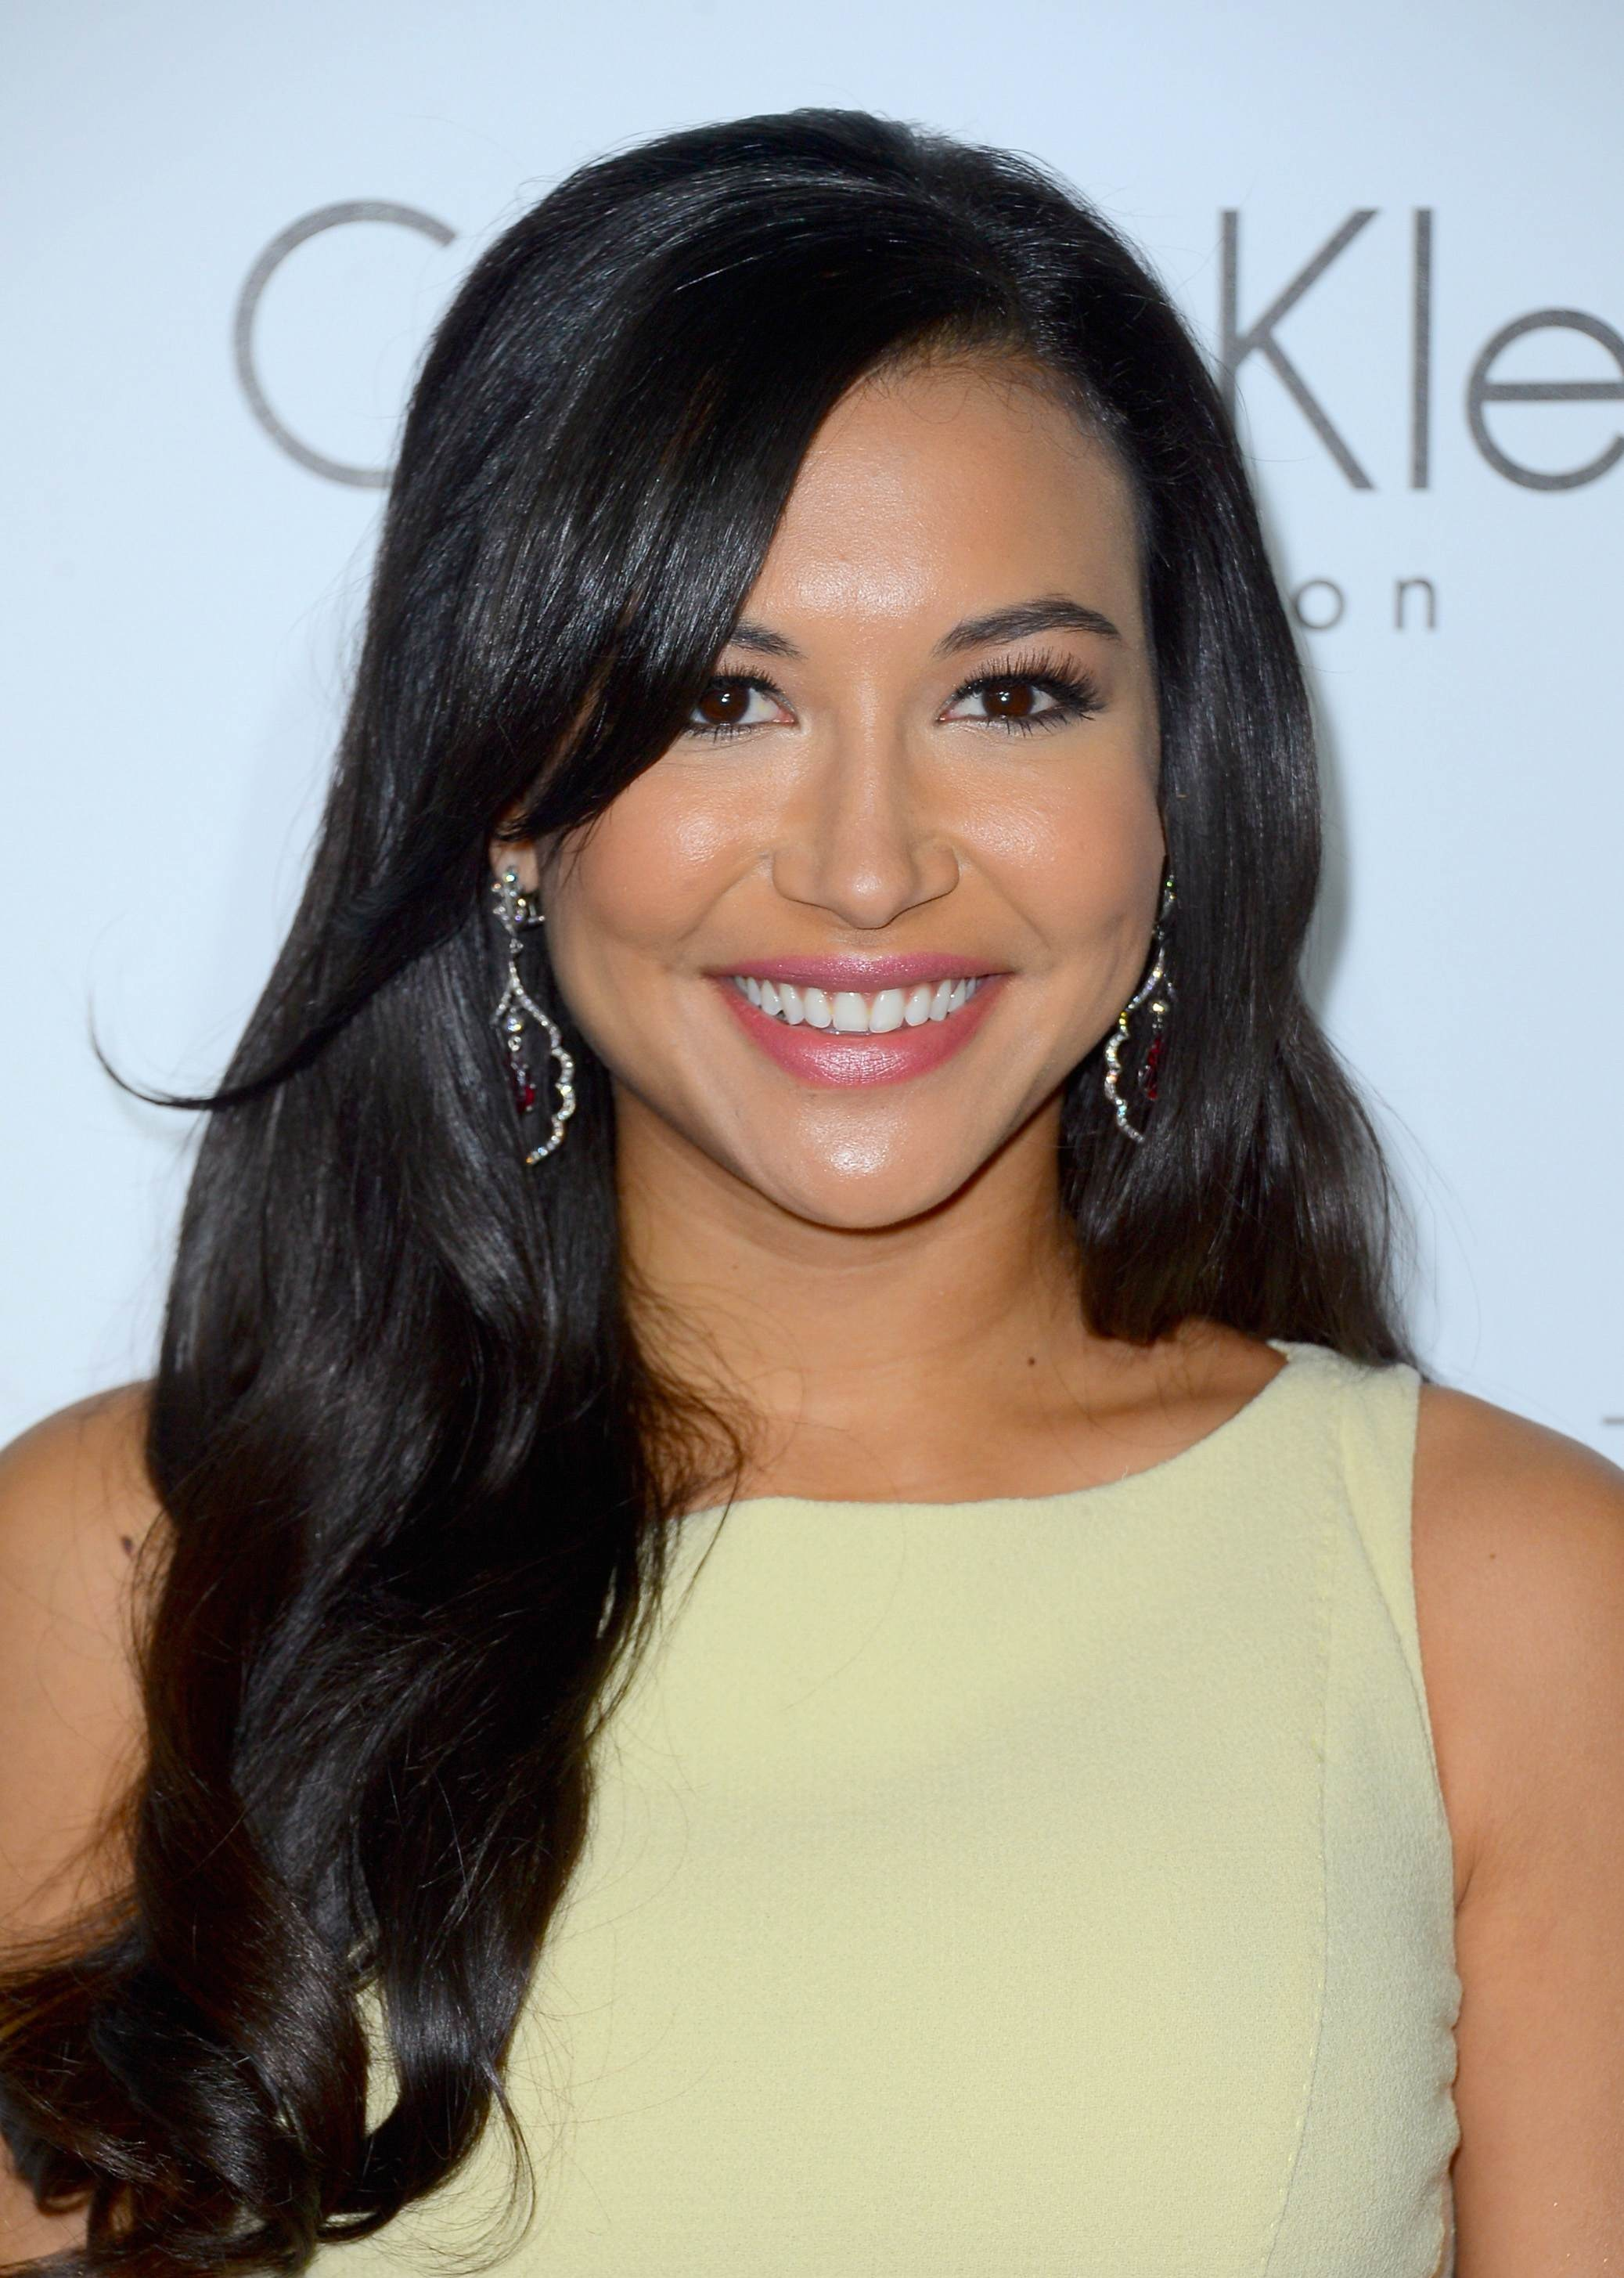 Movie actress Naya Rivera - age: 34